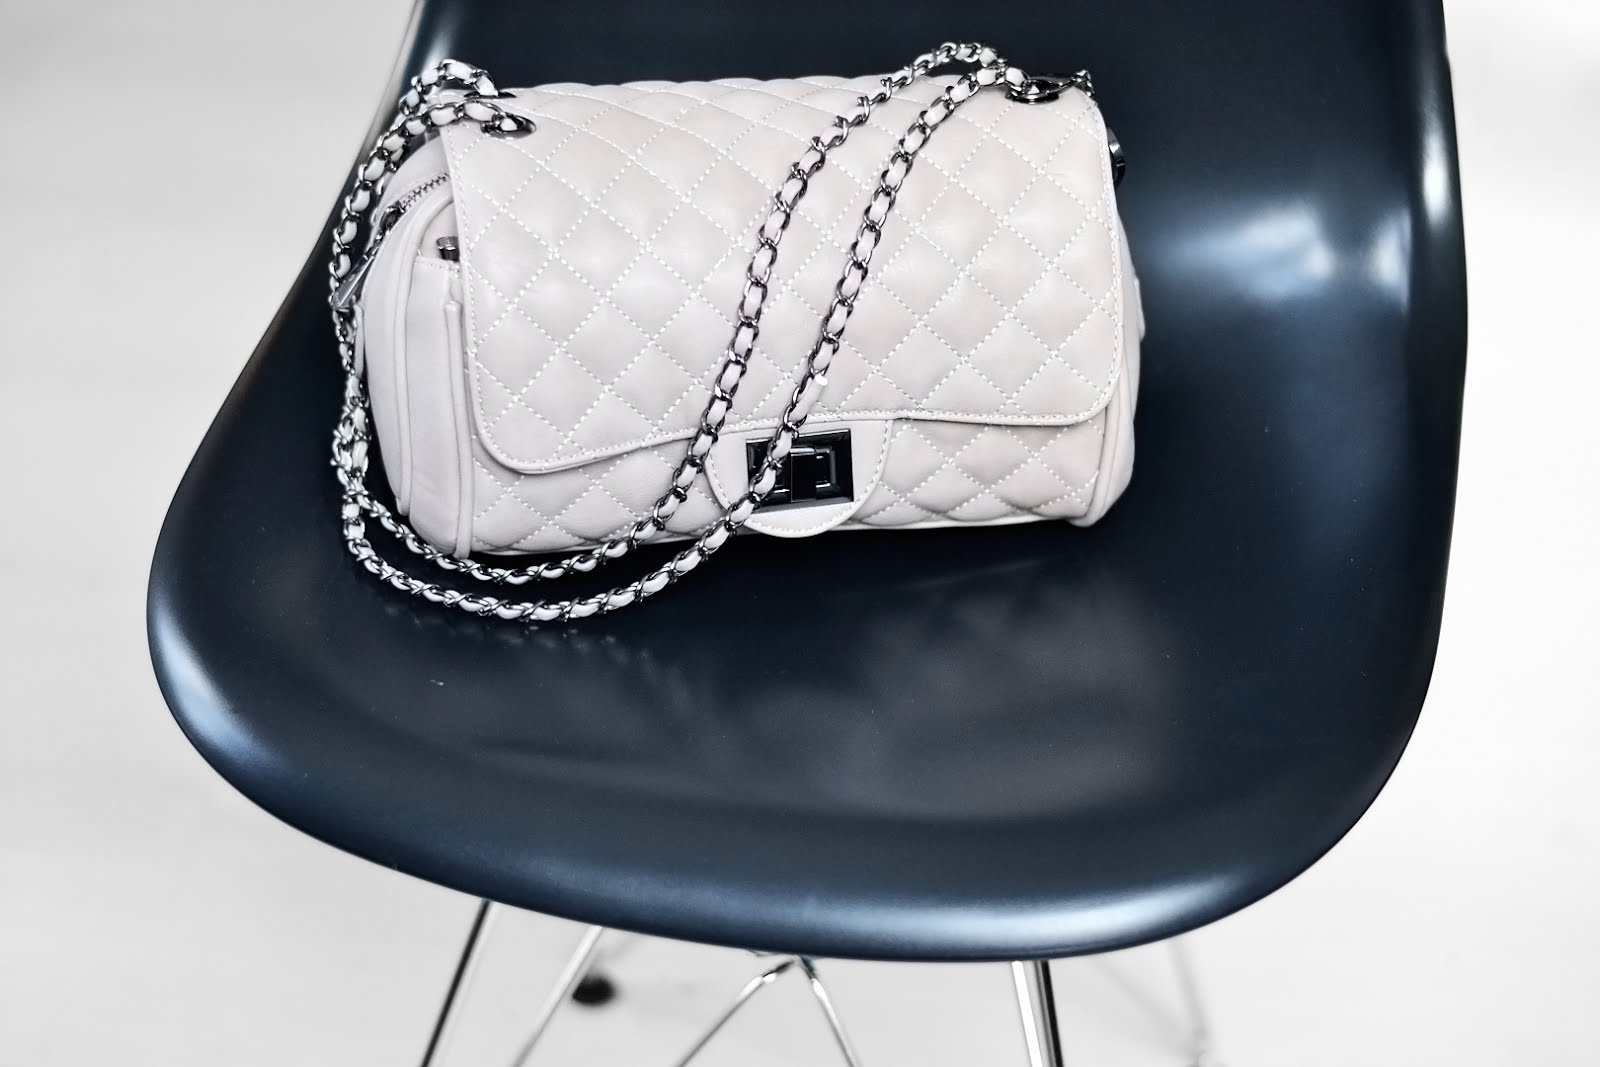 Marc B bag, knightsbridge, pebble grey, chain, chanel inspired, new in, fashion blogger, belgian, belgische modeblogger, handtas, trends, 2016